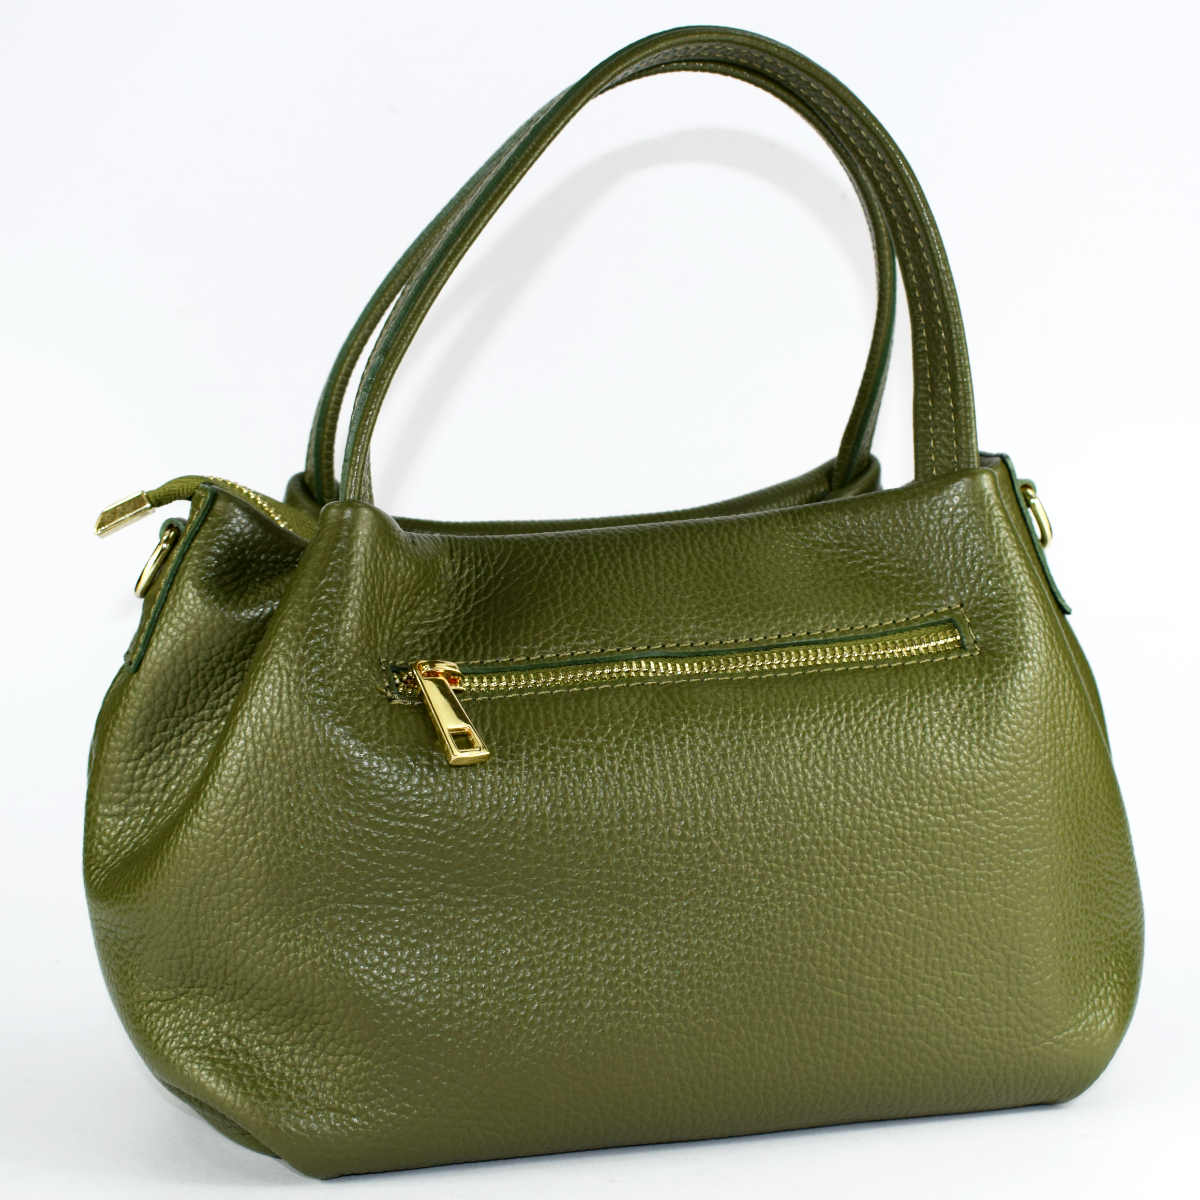 12726 small and soft satchel bag by Bottega Fiorentina